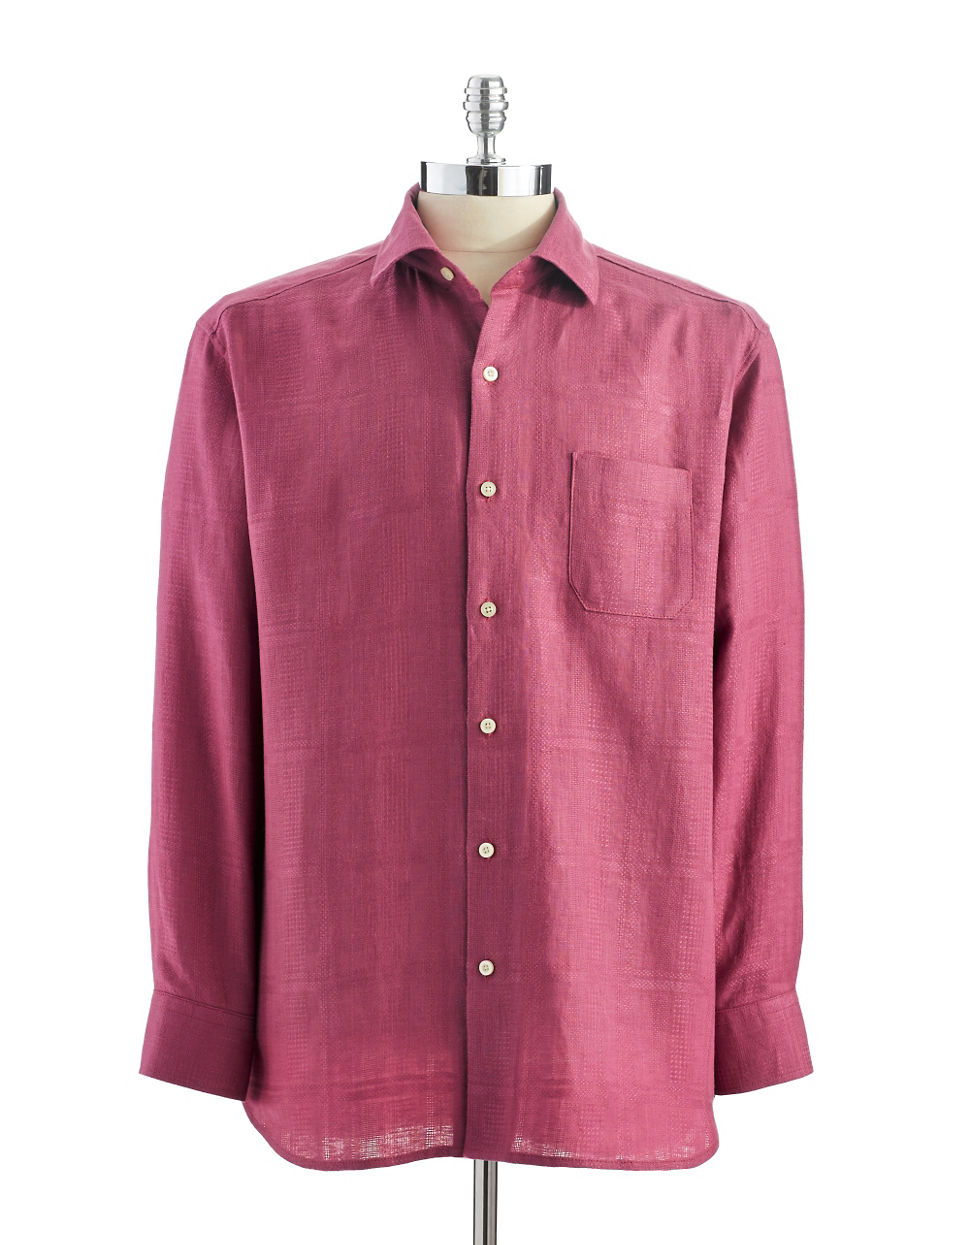 Tommy bahama monte carlo linen button down shirt in purple for Tommy bahama christmas shirt 2014